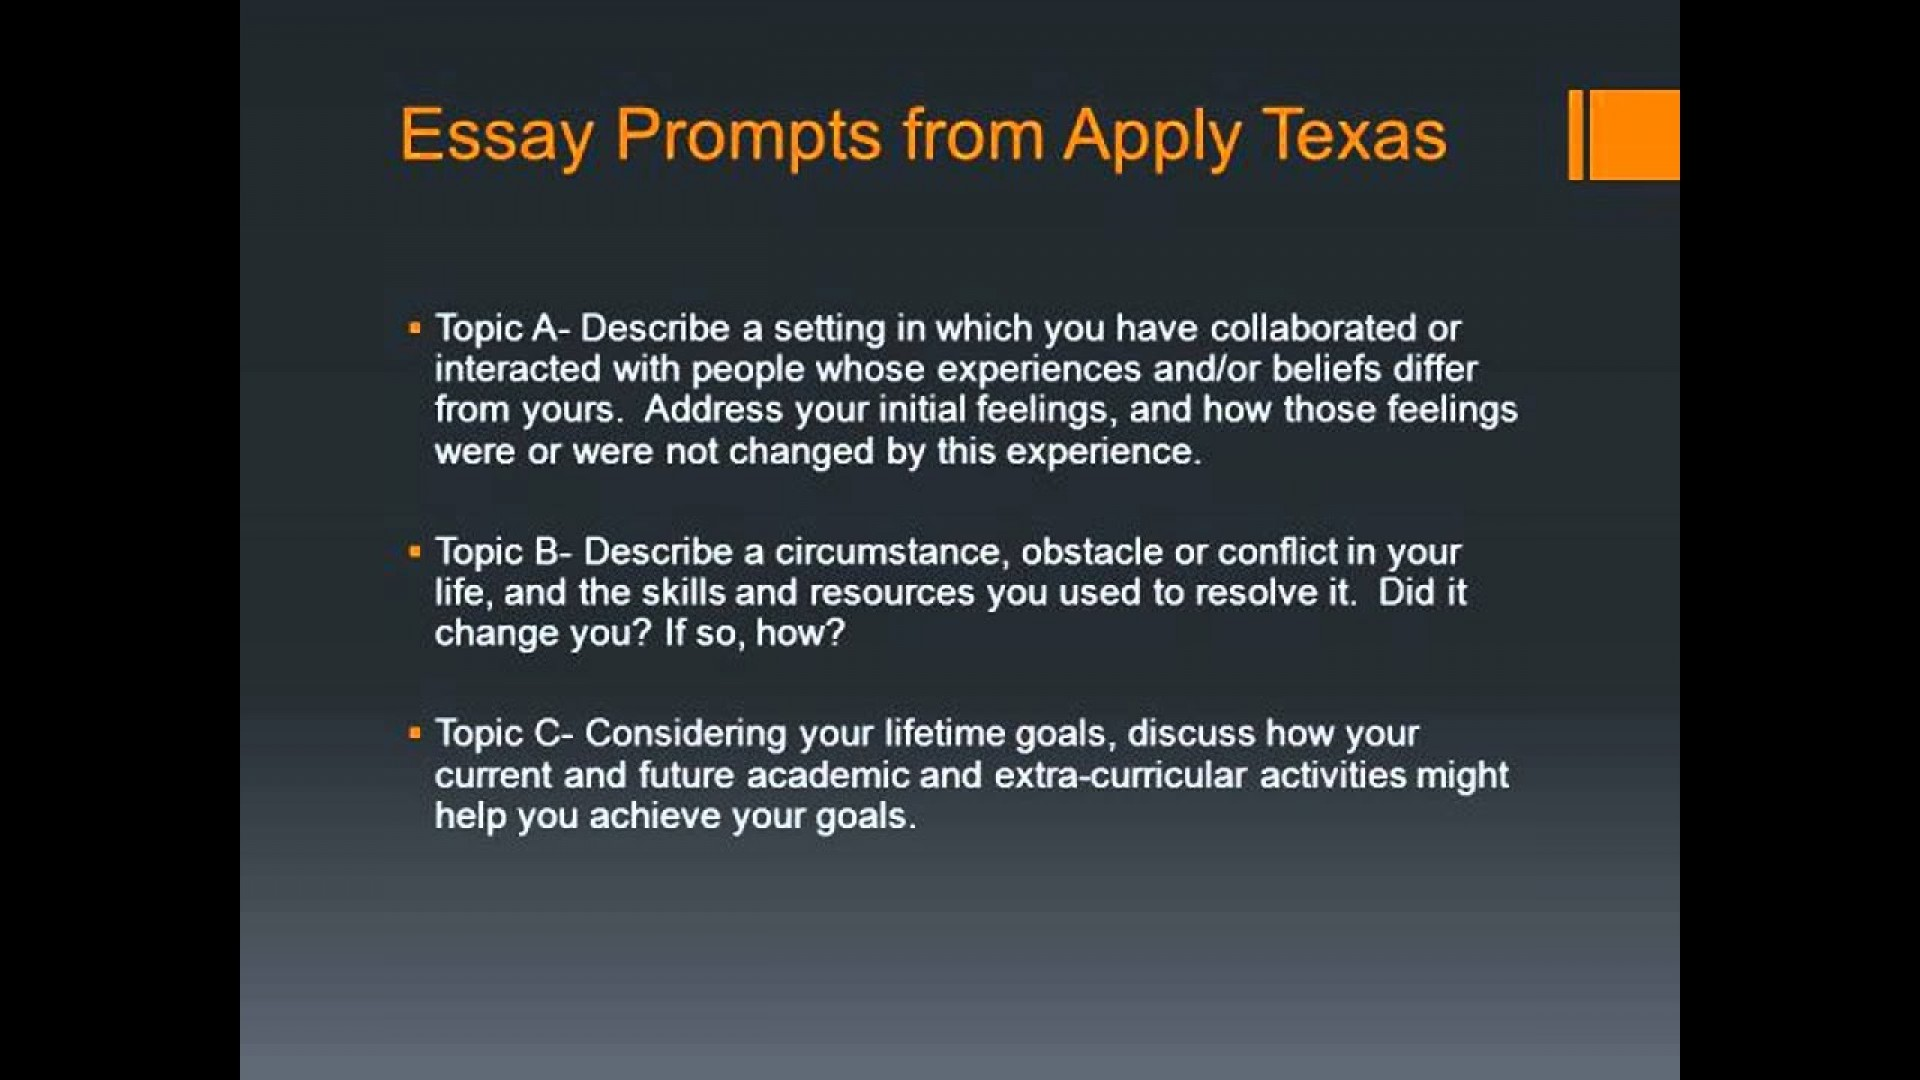 006 Essay Example Apply Texas Topic Examples Striking A C College 1920